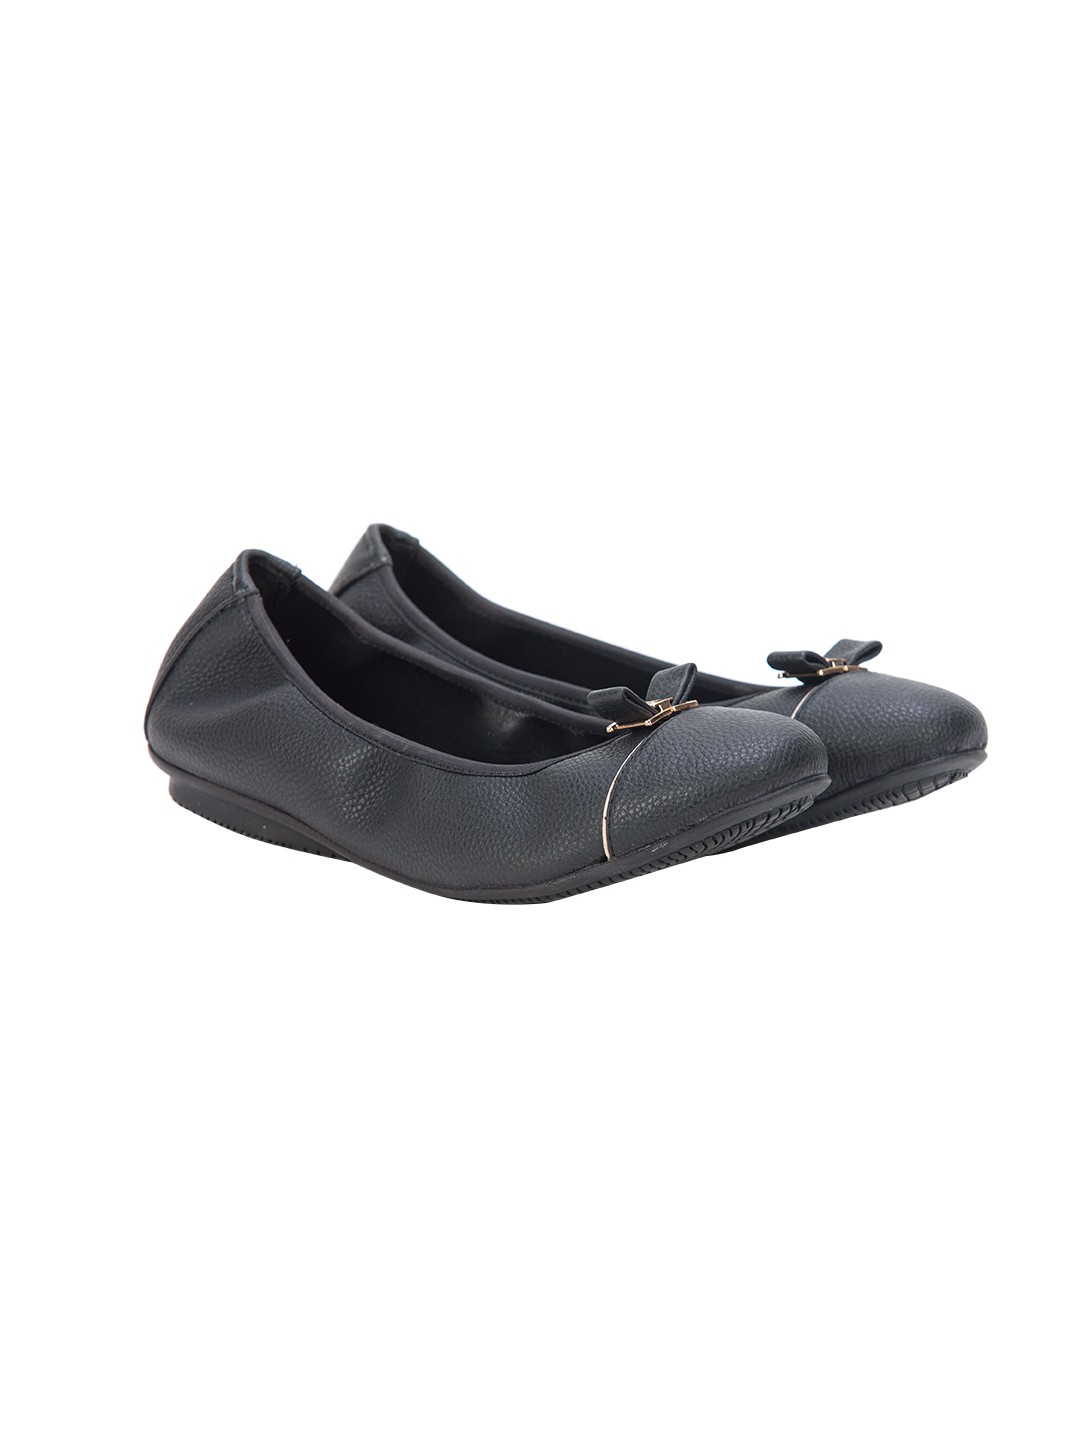 Buy VON WELLX GERMANY COMFORT POISE CASUAL BLACK SHOES In Delhi